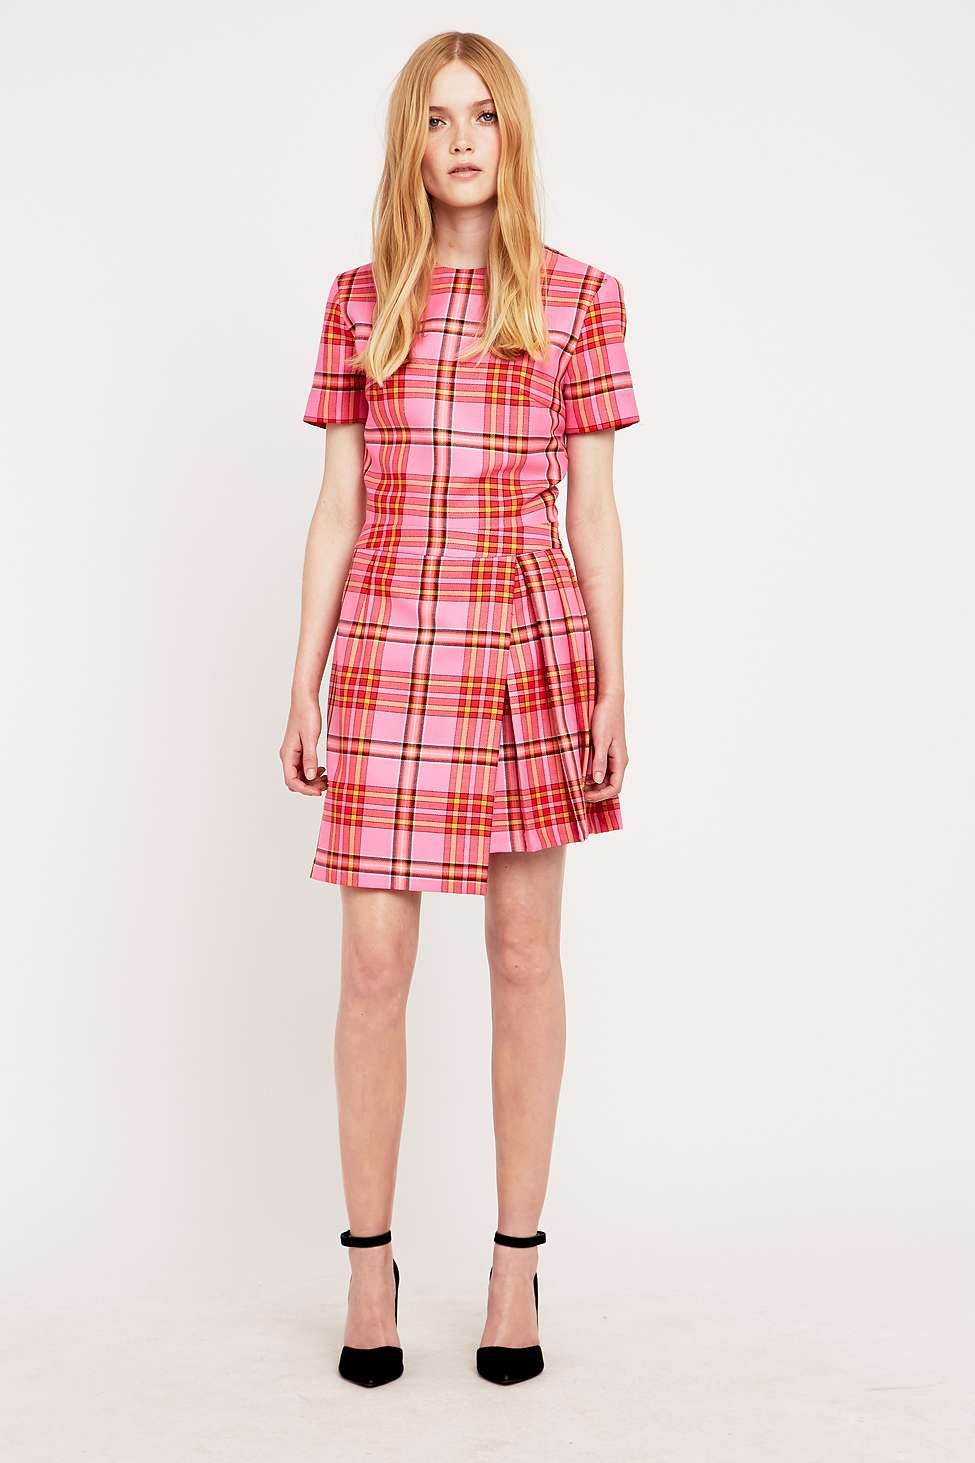 House of Holland Pink Tartan Kilt Dress